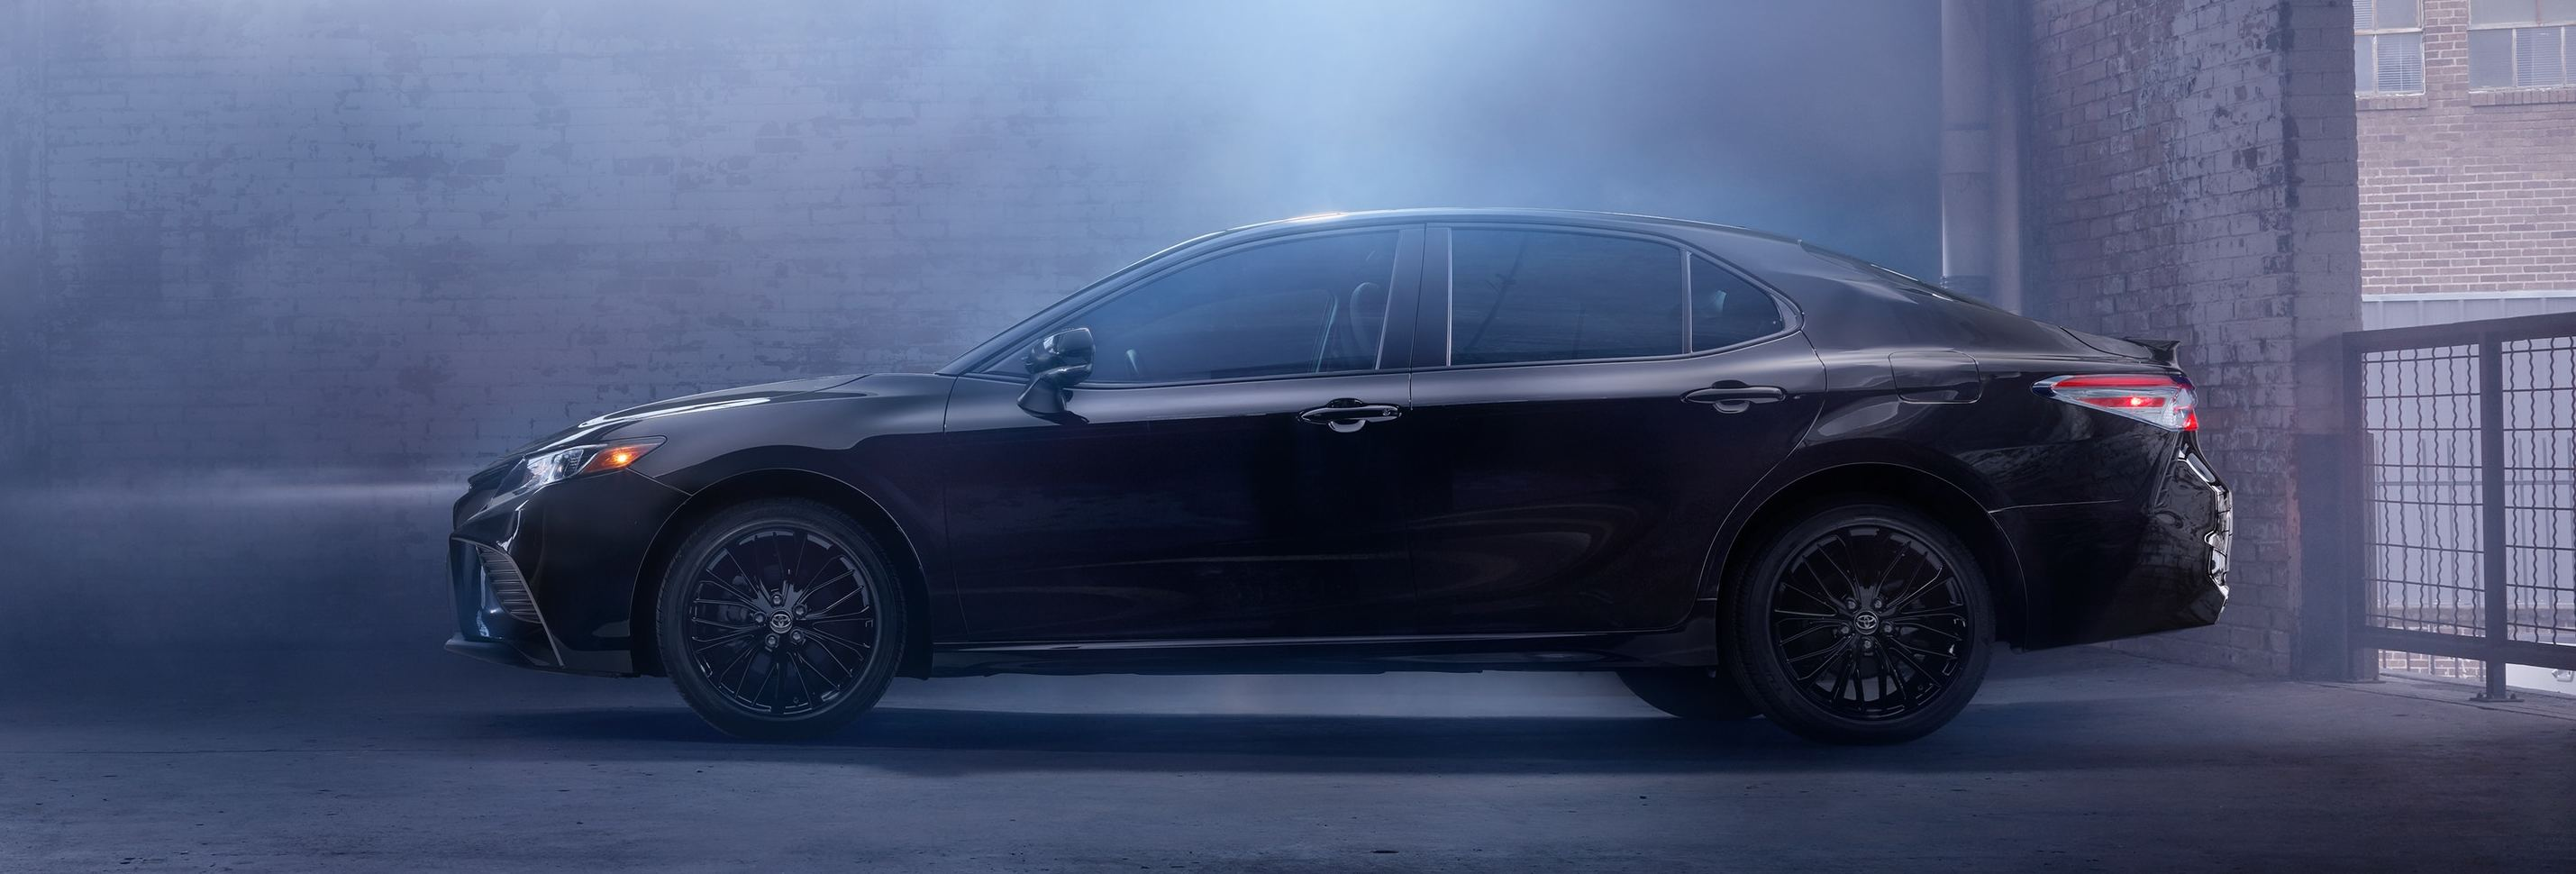 2020 Toyota Camry Trim Levels in Cookeville, TN